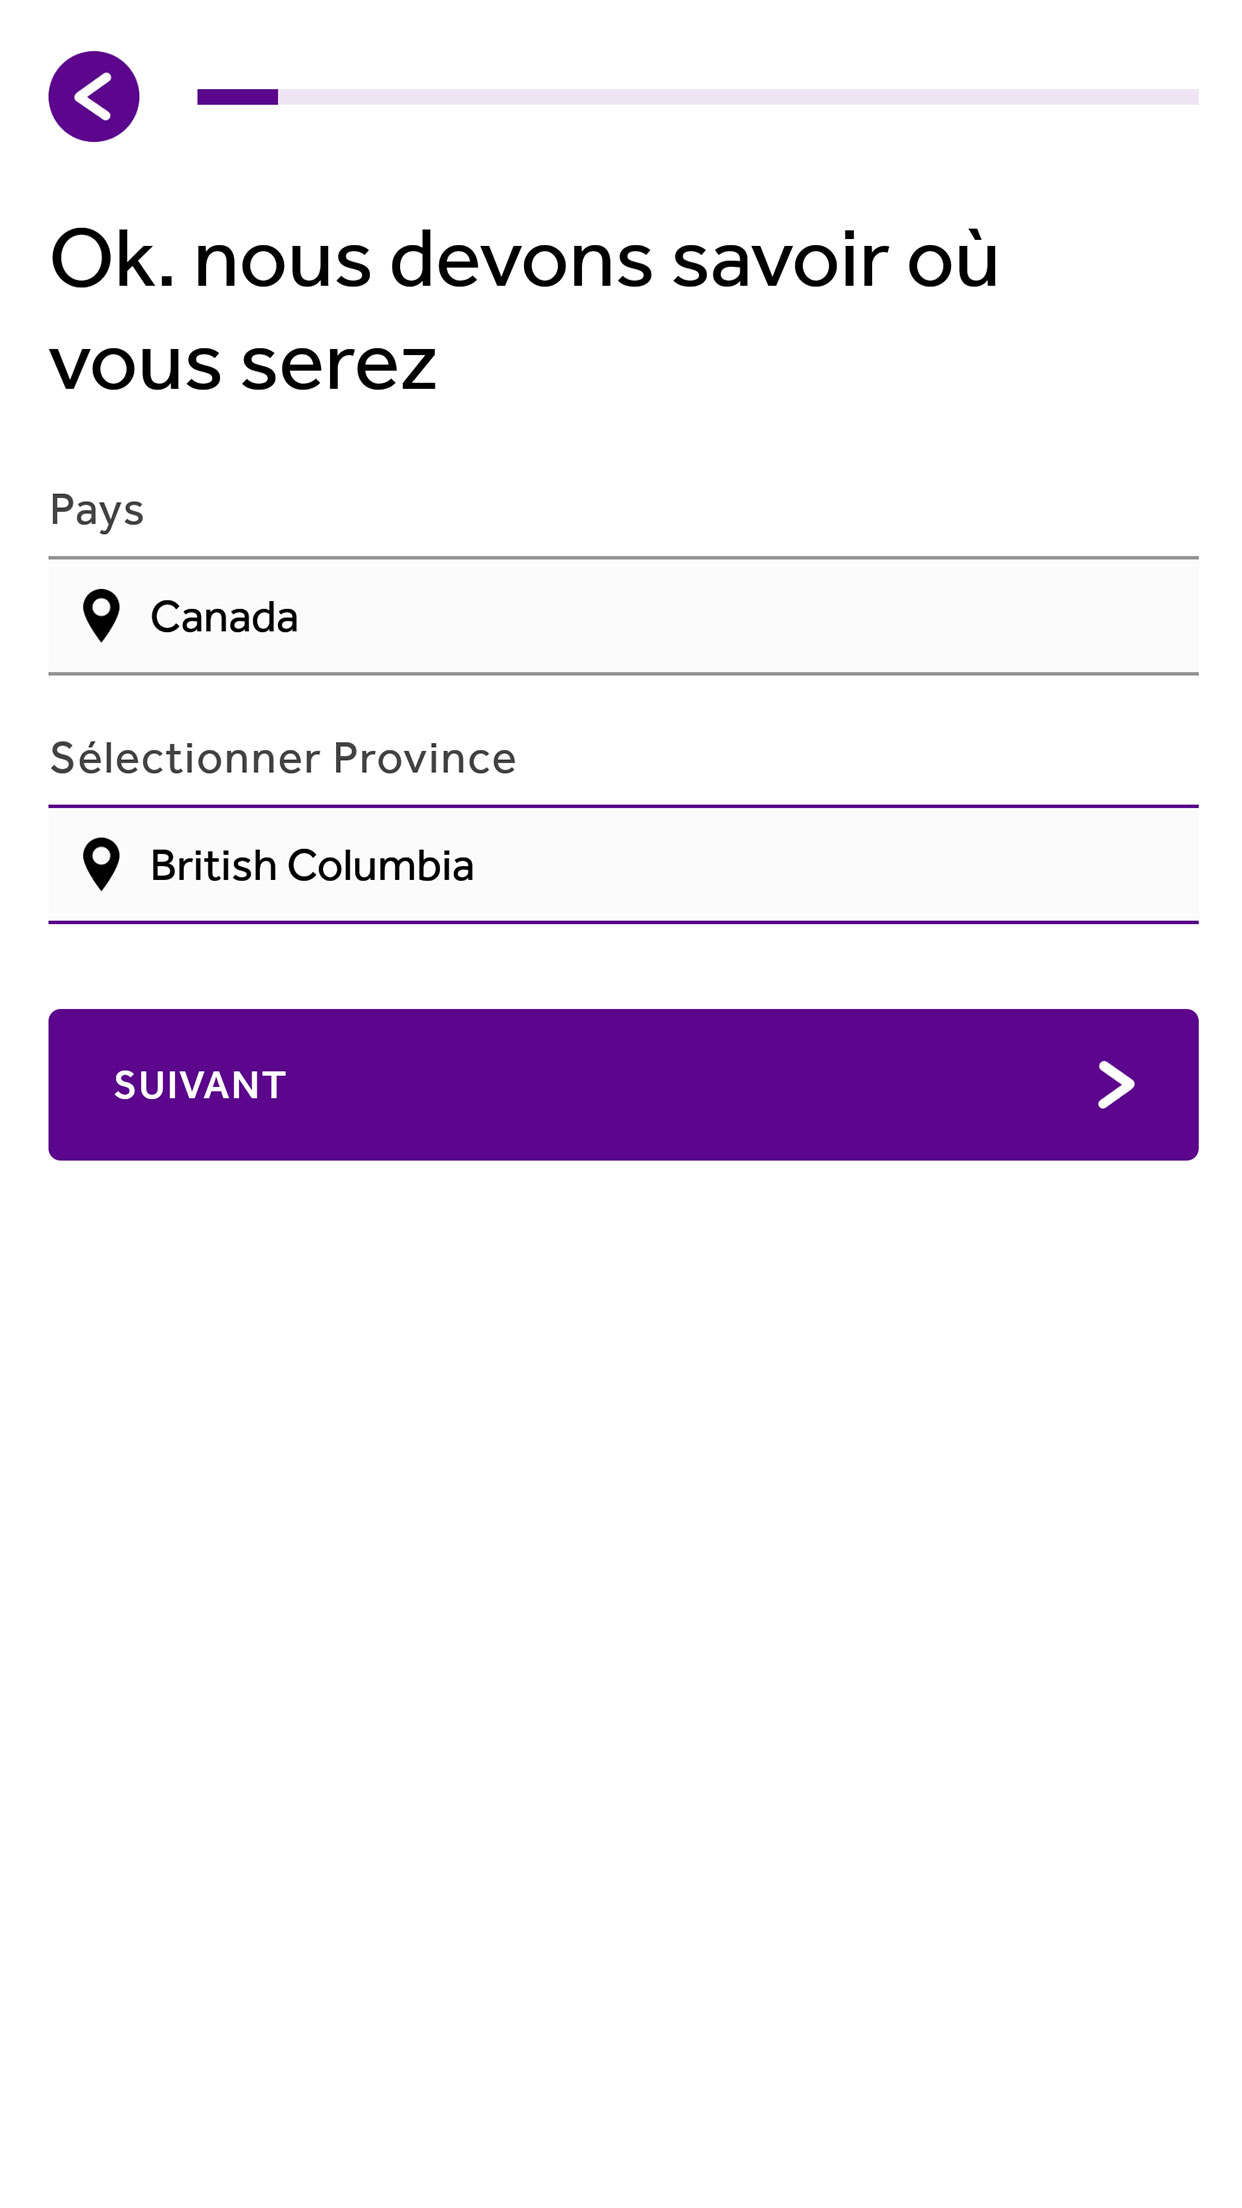 App screen where the user selects what province they will be located in at the time of the requested doctor visit.